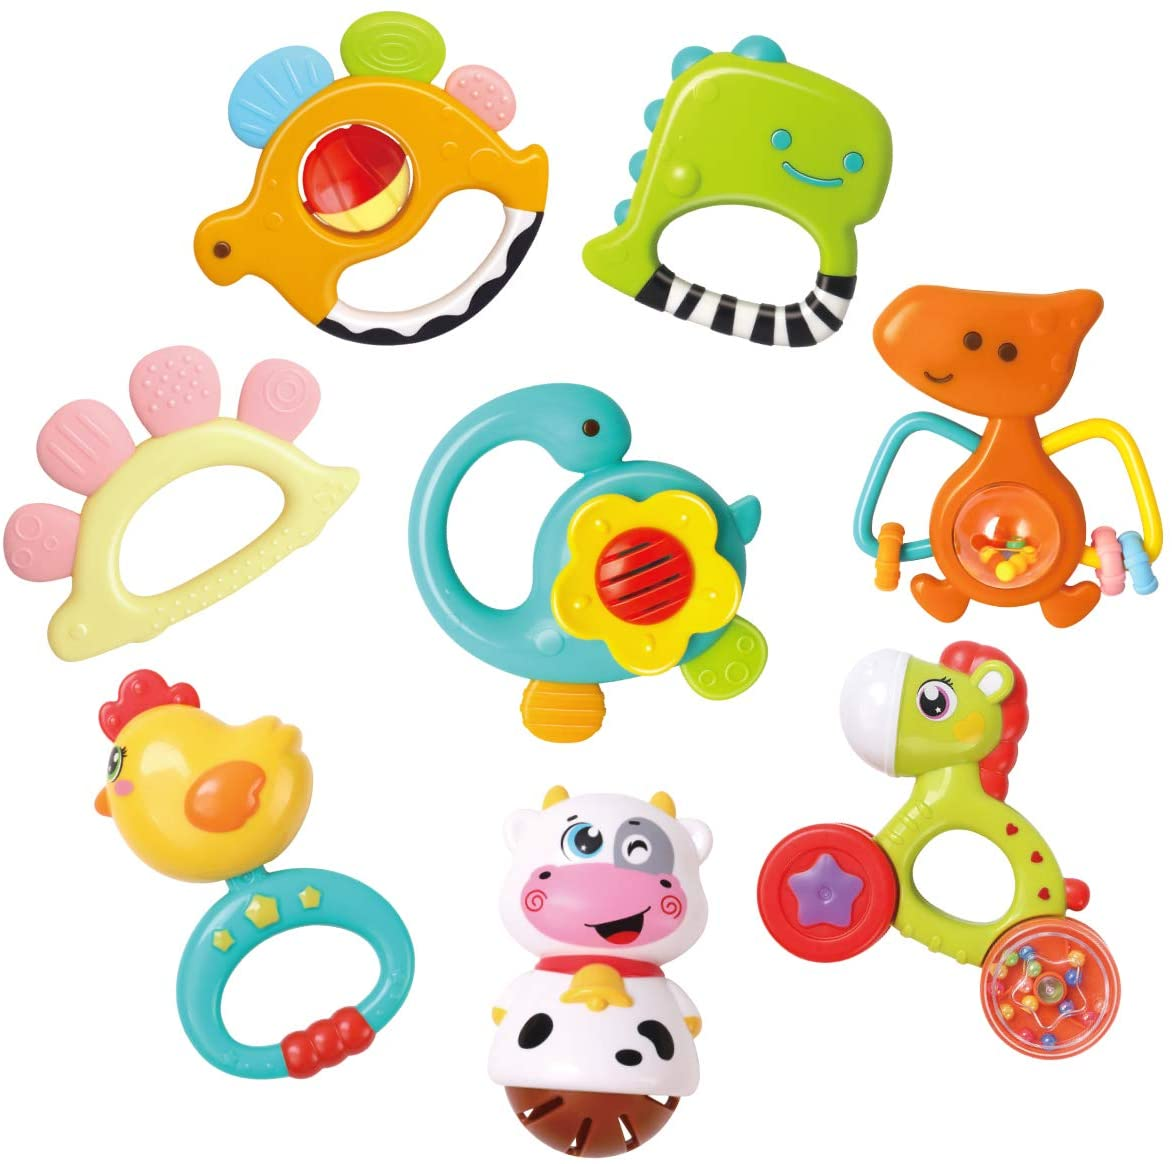 GILOBABY Baby Animal Rattle Teether, Shaker, Roll Rattle, Early Educational Toys for 3 6 9 12 18 Month Baby Infant Toddler, Newborn